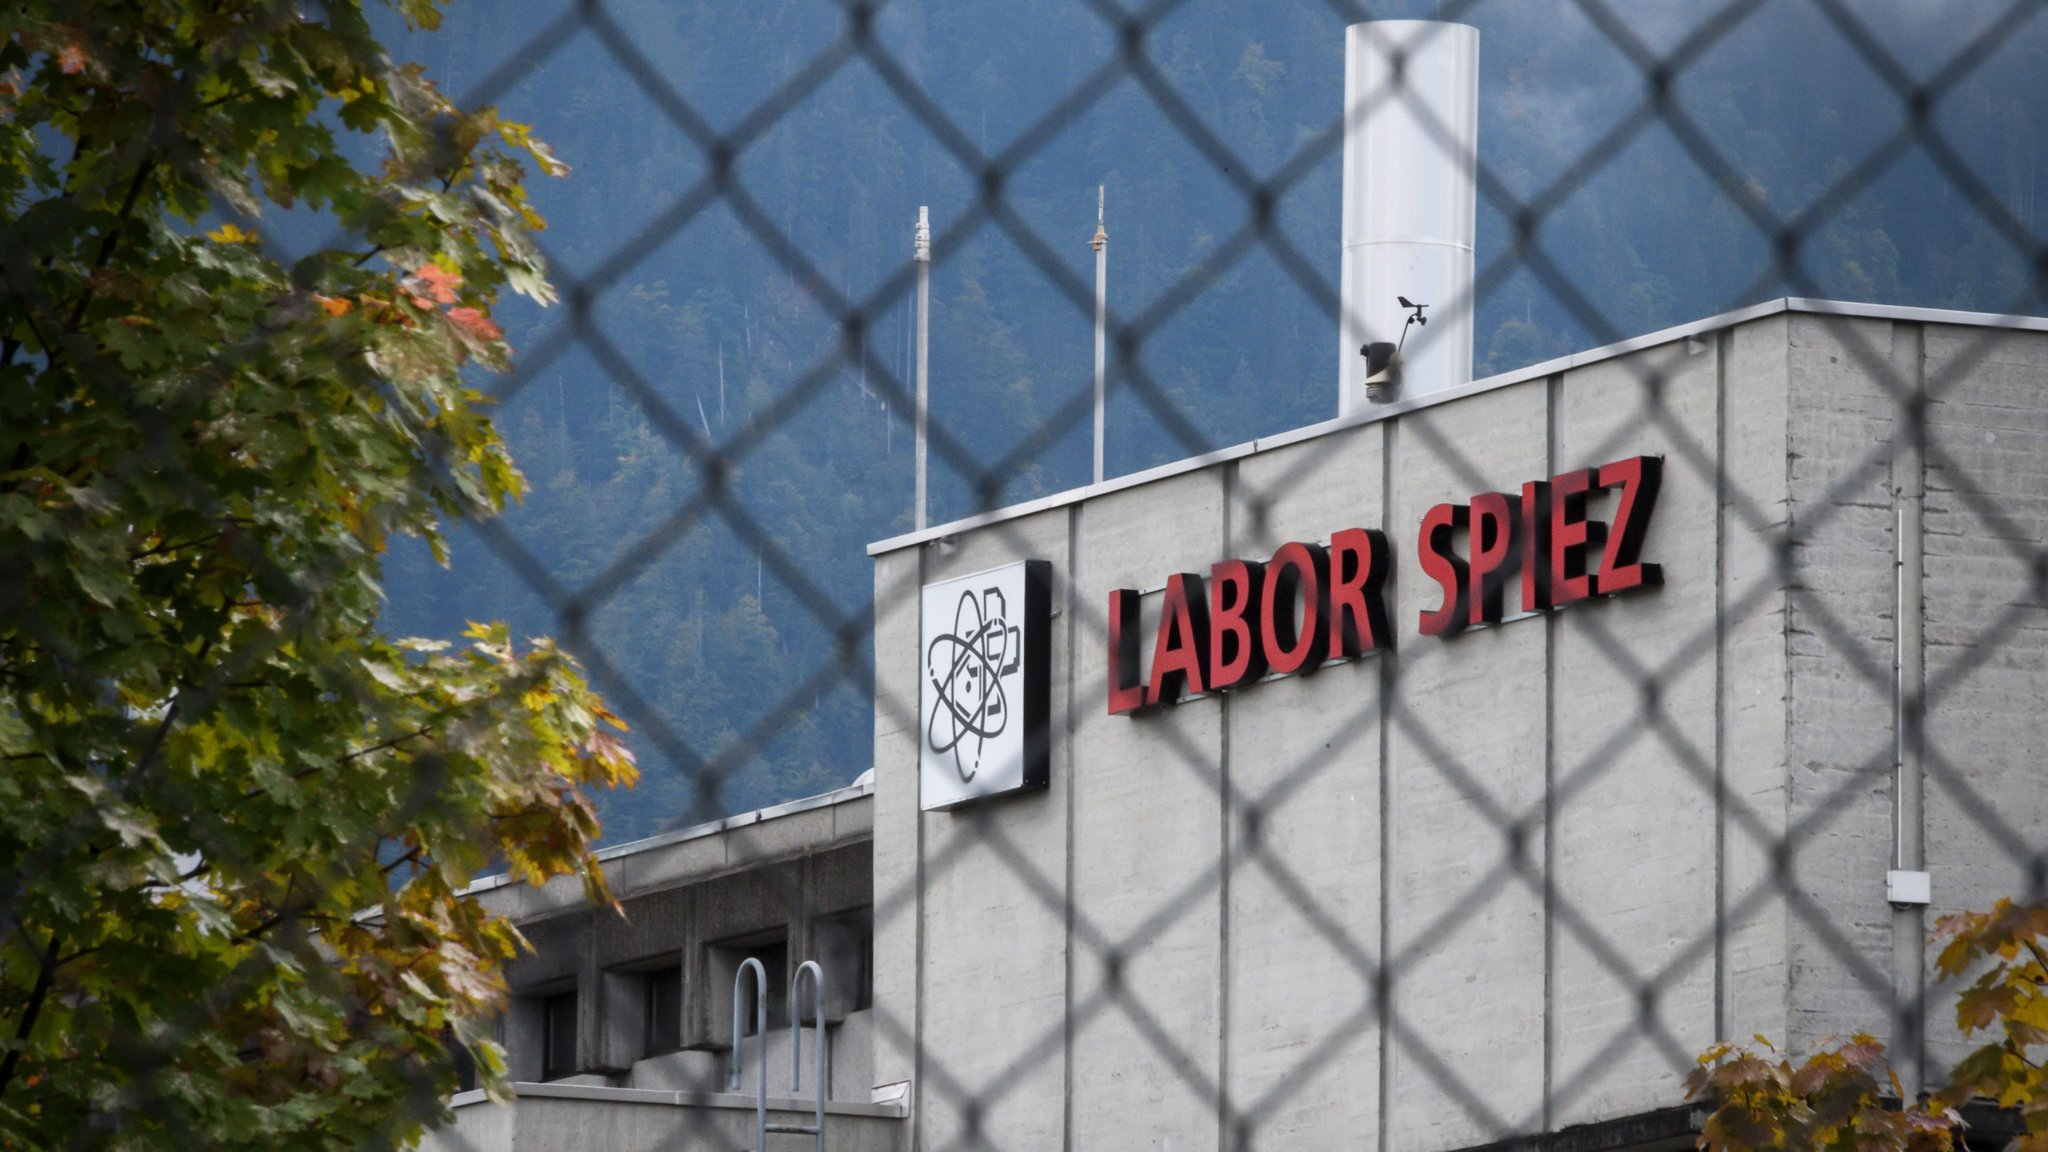 Switzerland foils Russian spies plot on chemicals lab | Financial Times